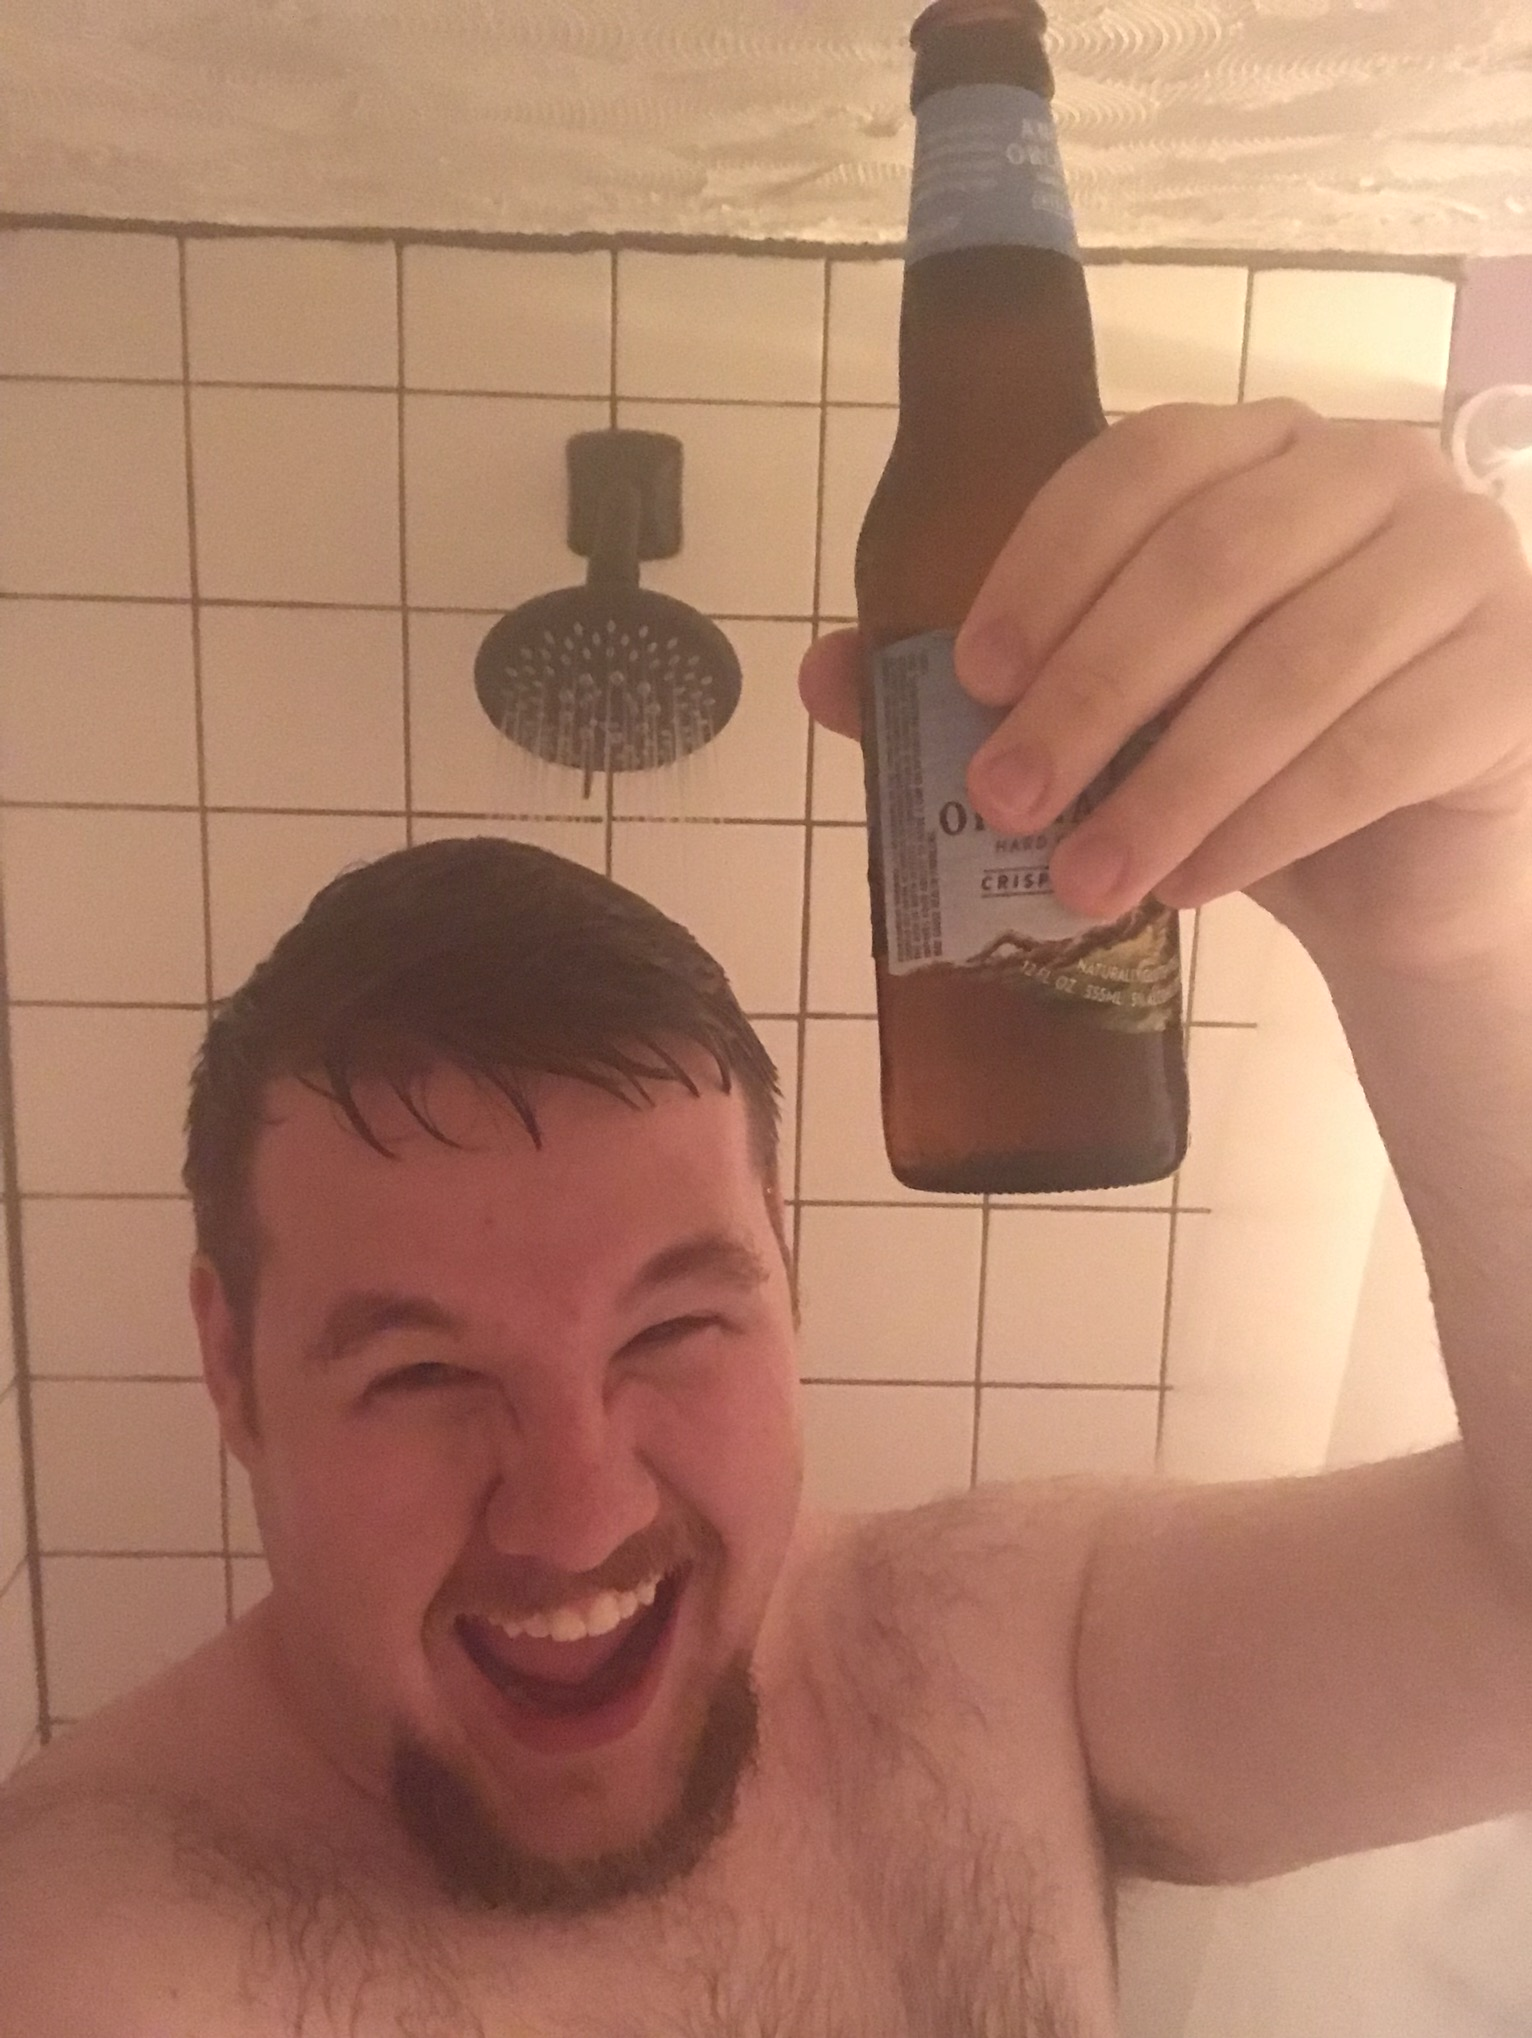 Enjoying a beverage in the shower